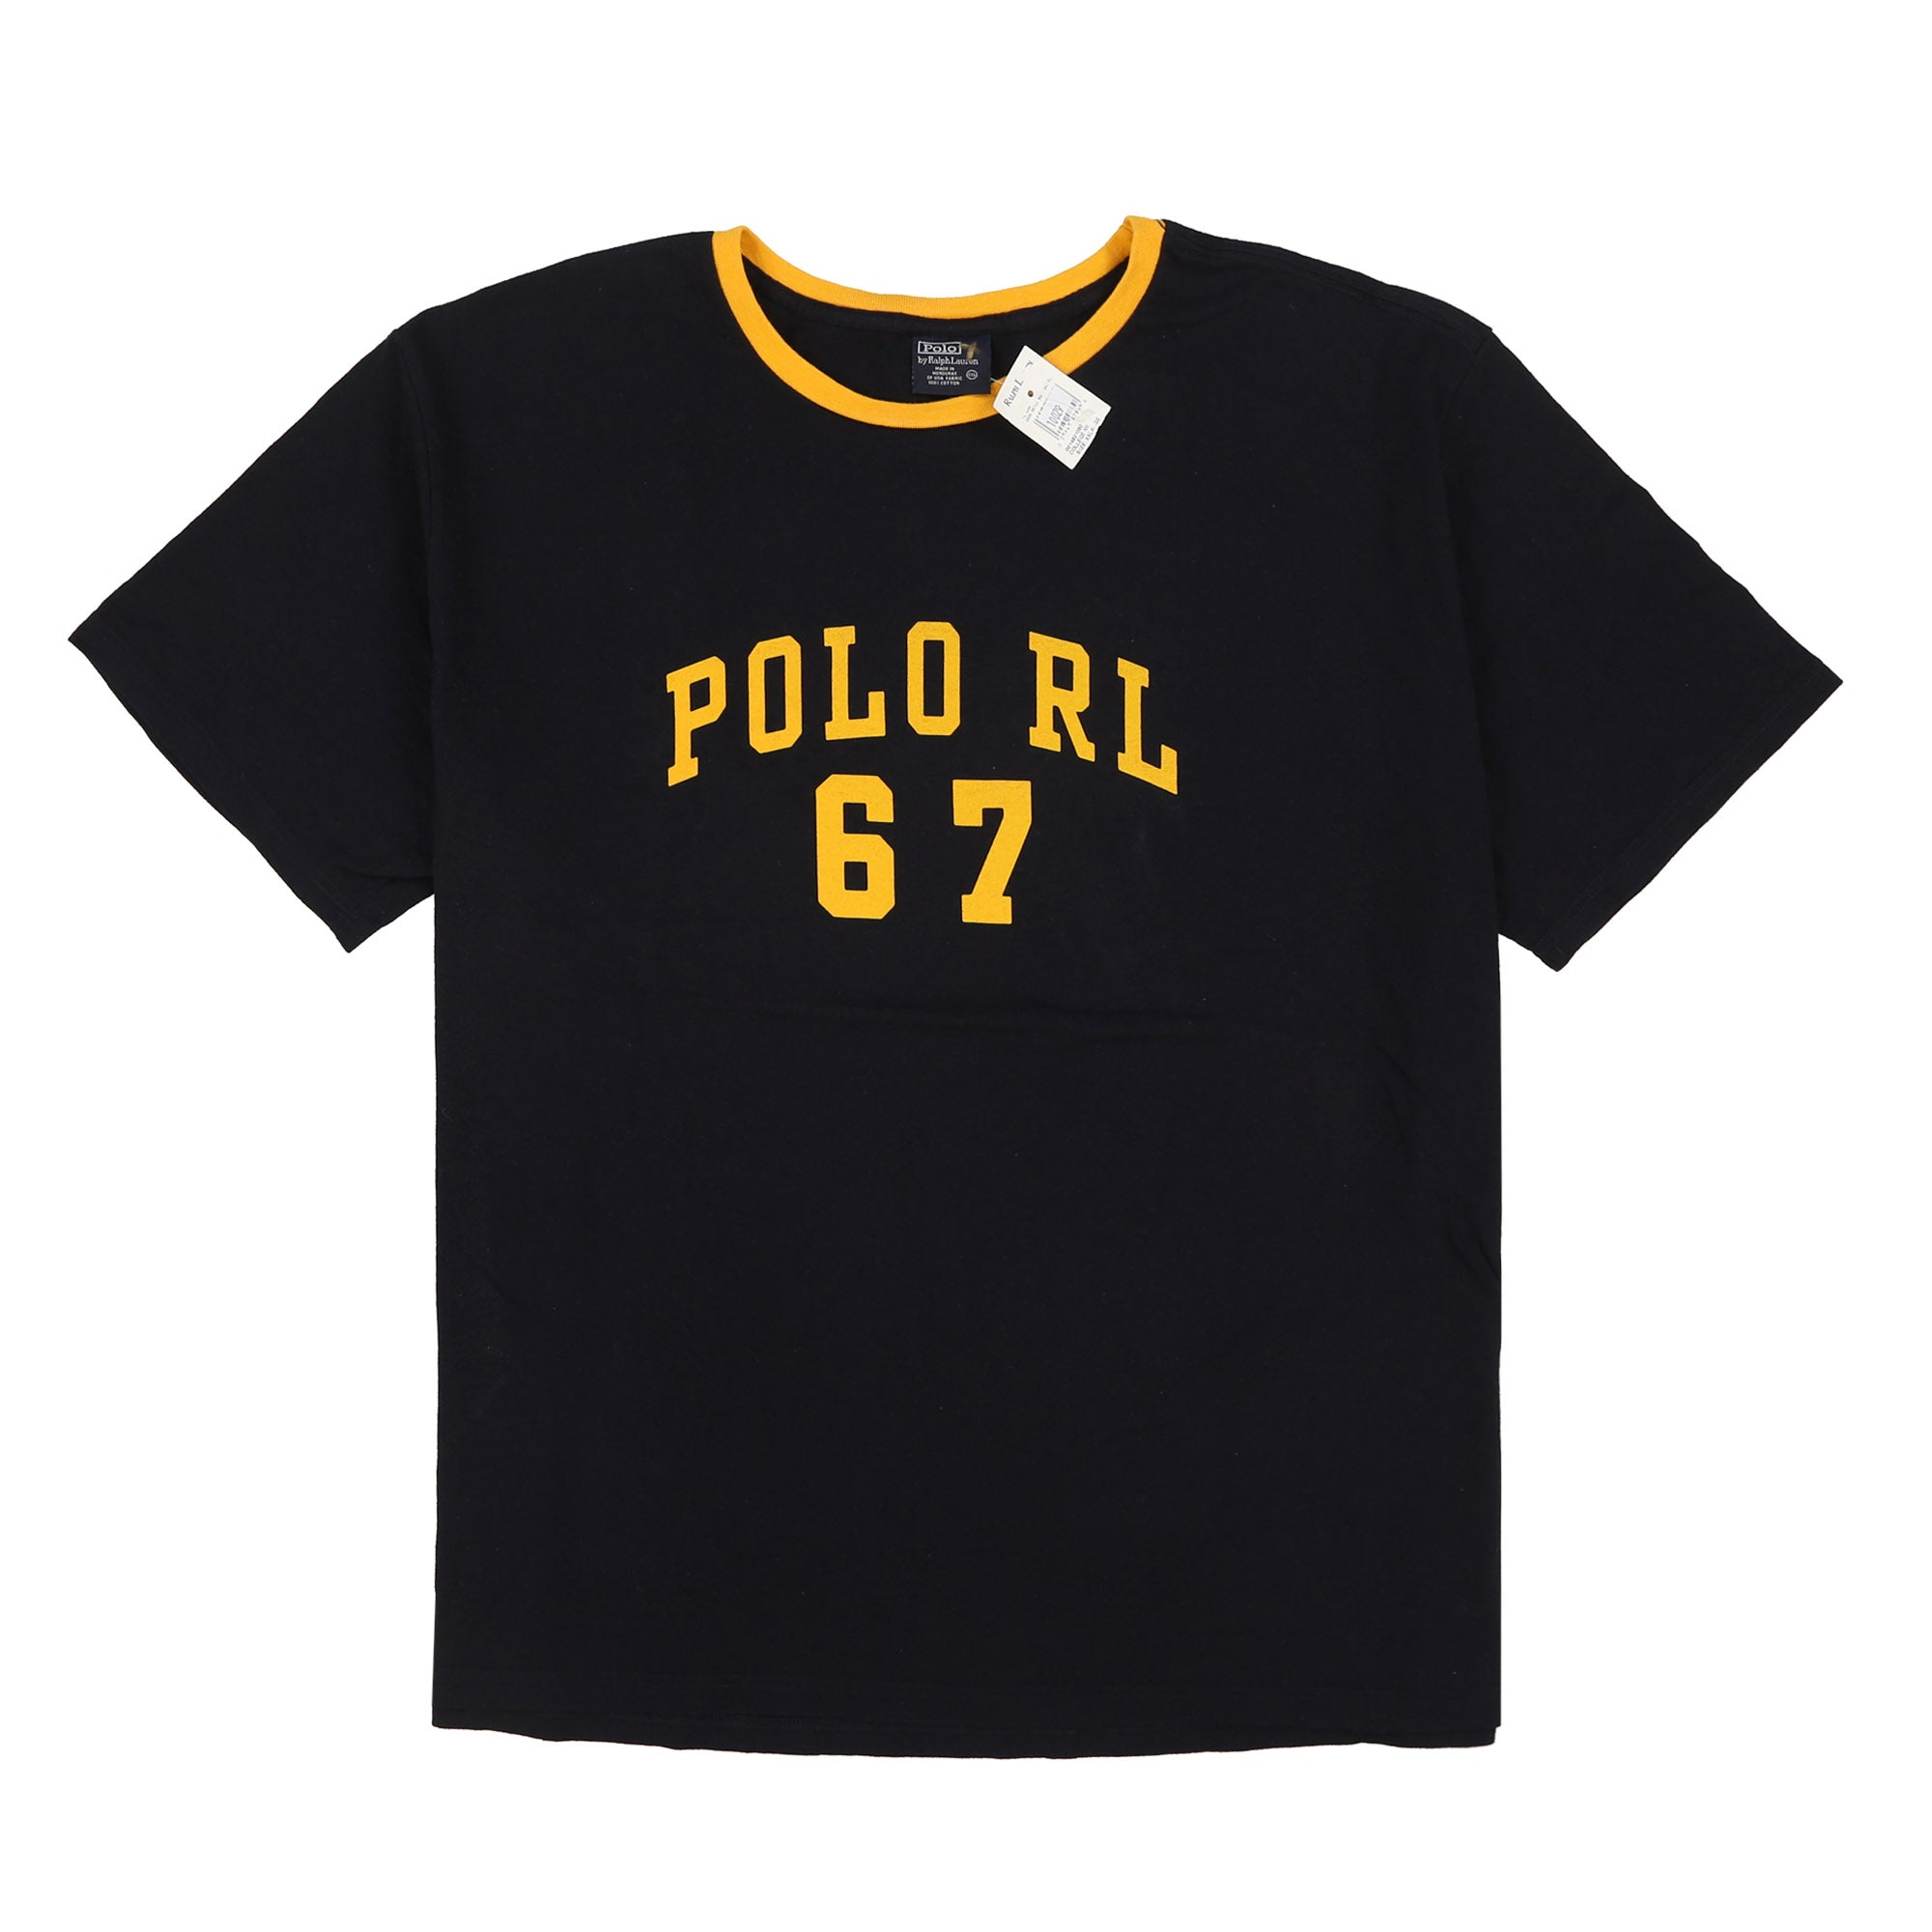 POLO RL 67 SPELL OUT RINGER TEE // NAVY YELLOW